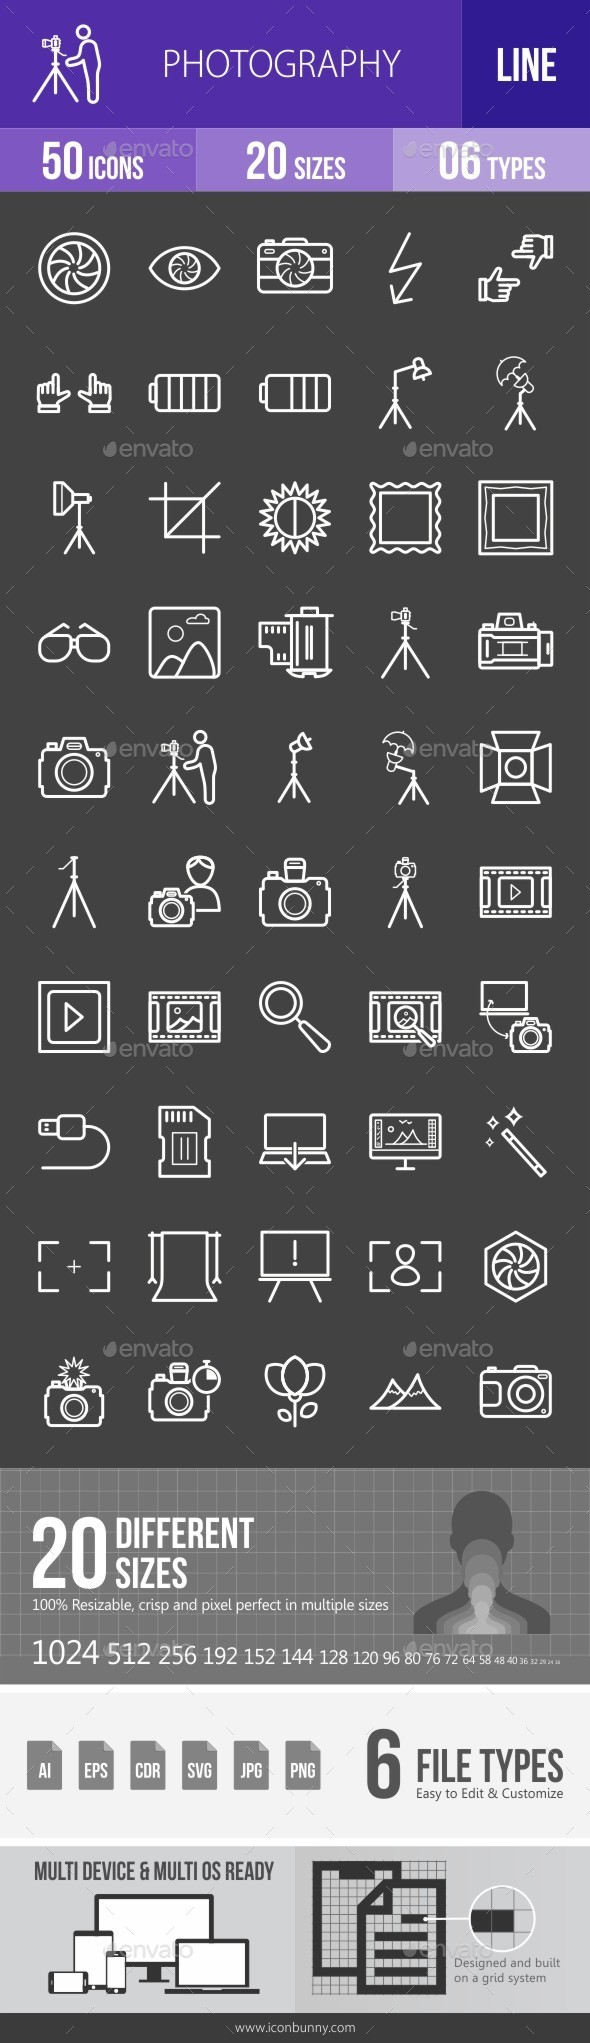 Photography Line Inverted Icons - Icons